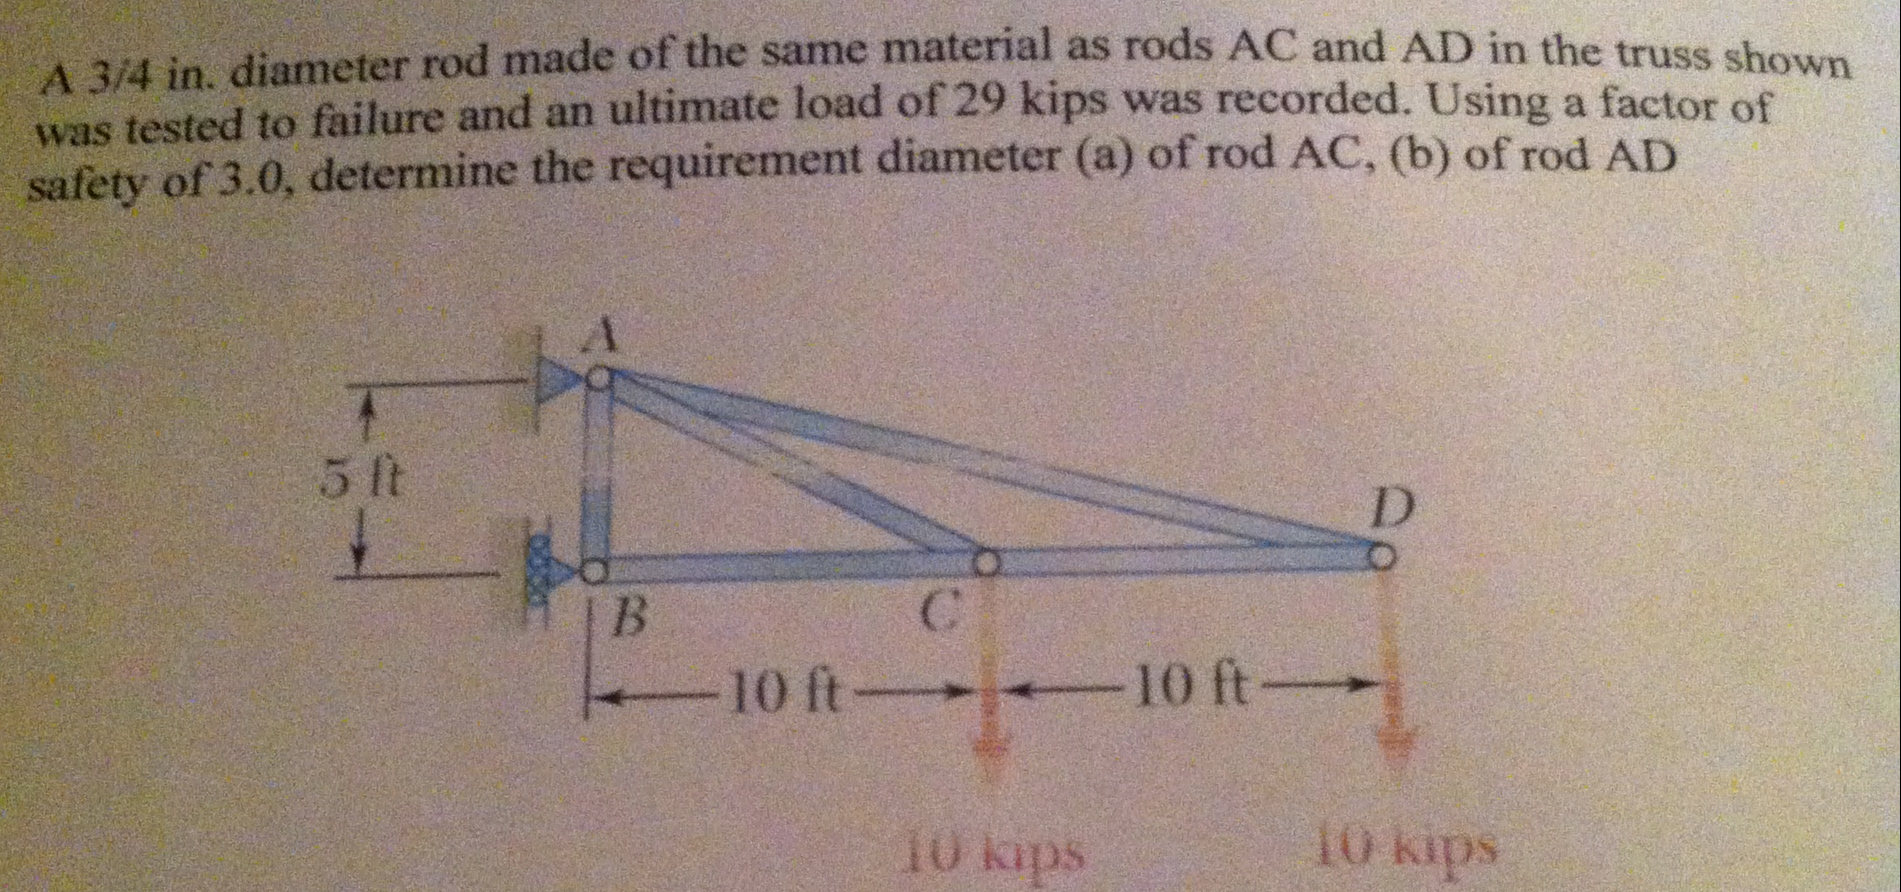 A 3/4 in. diameter rod made of the same material a